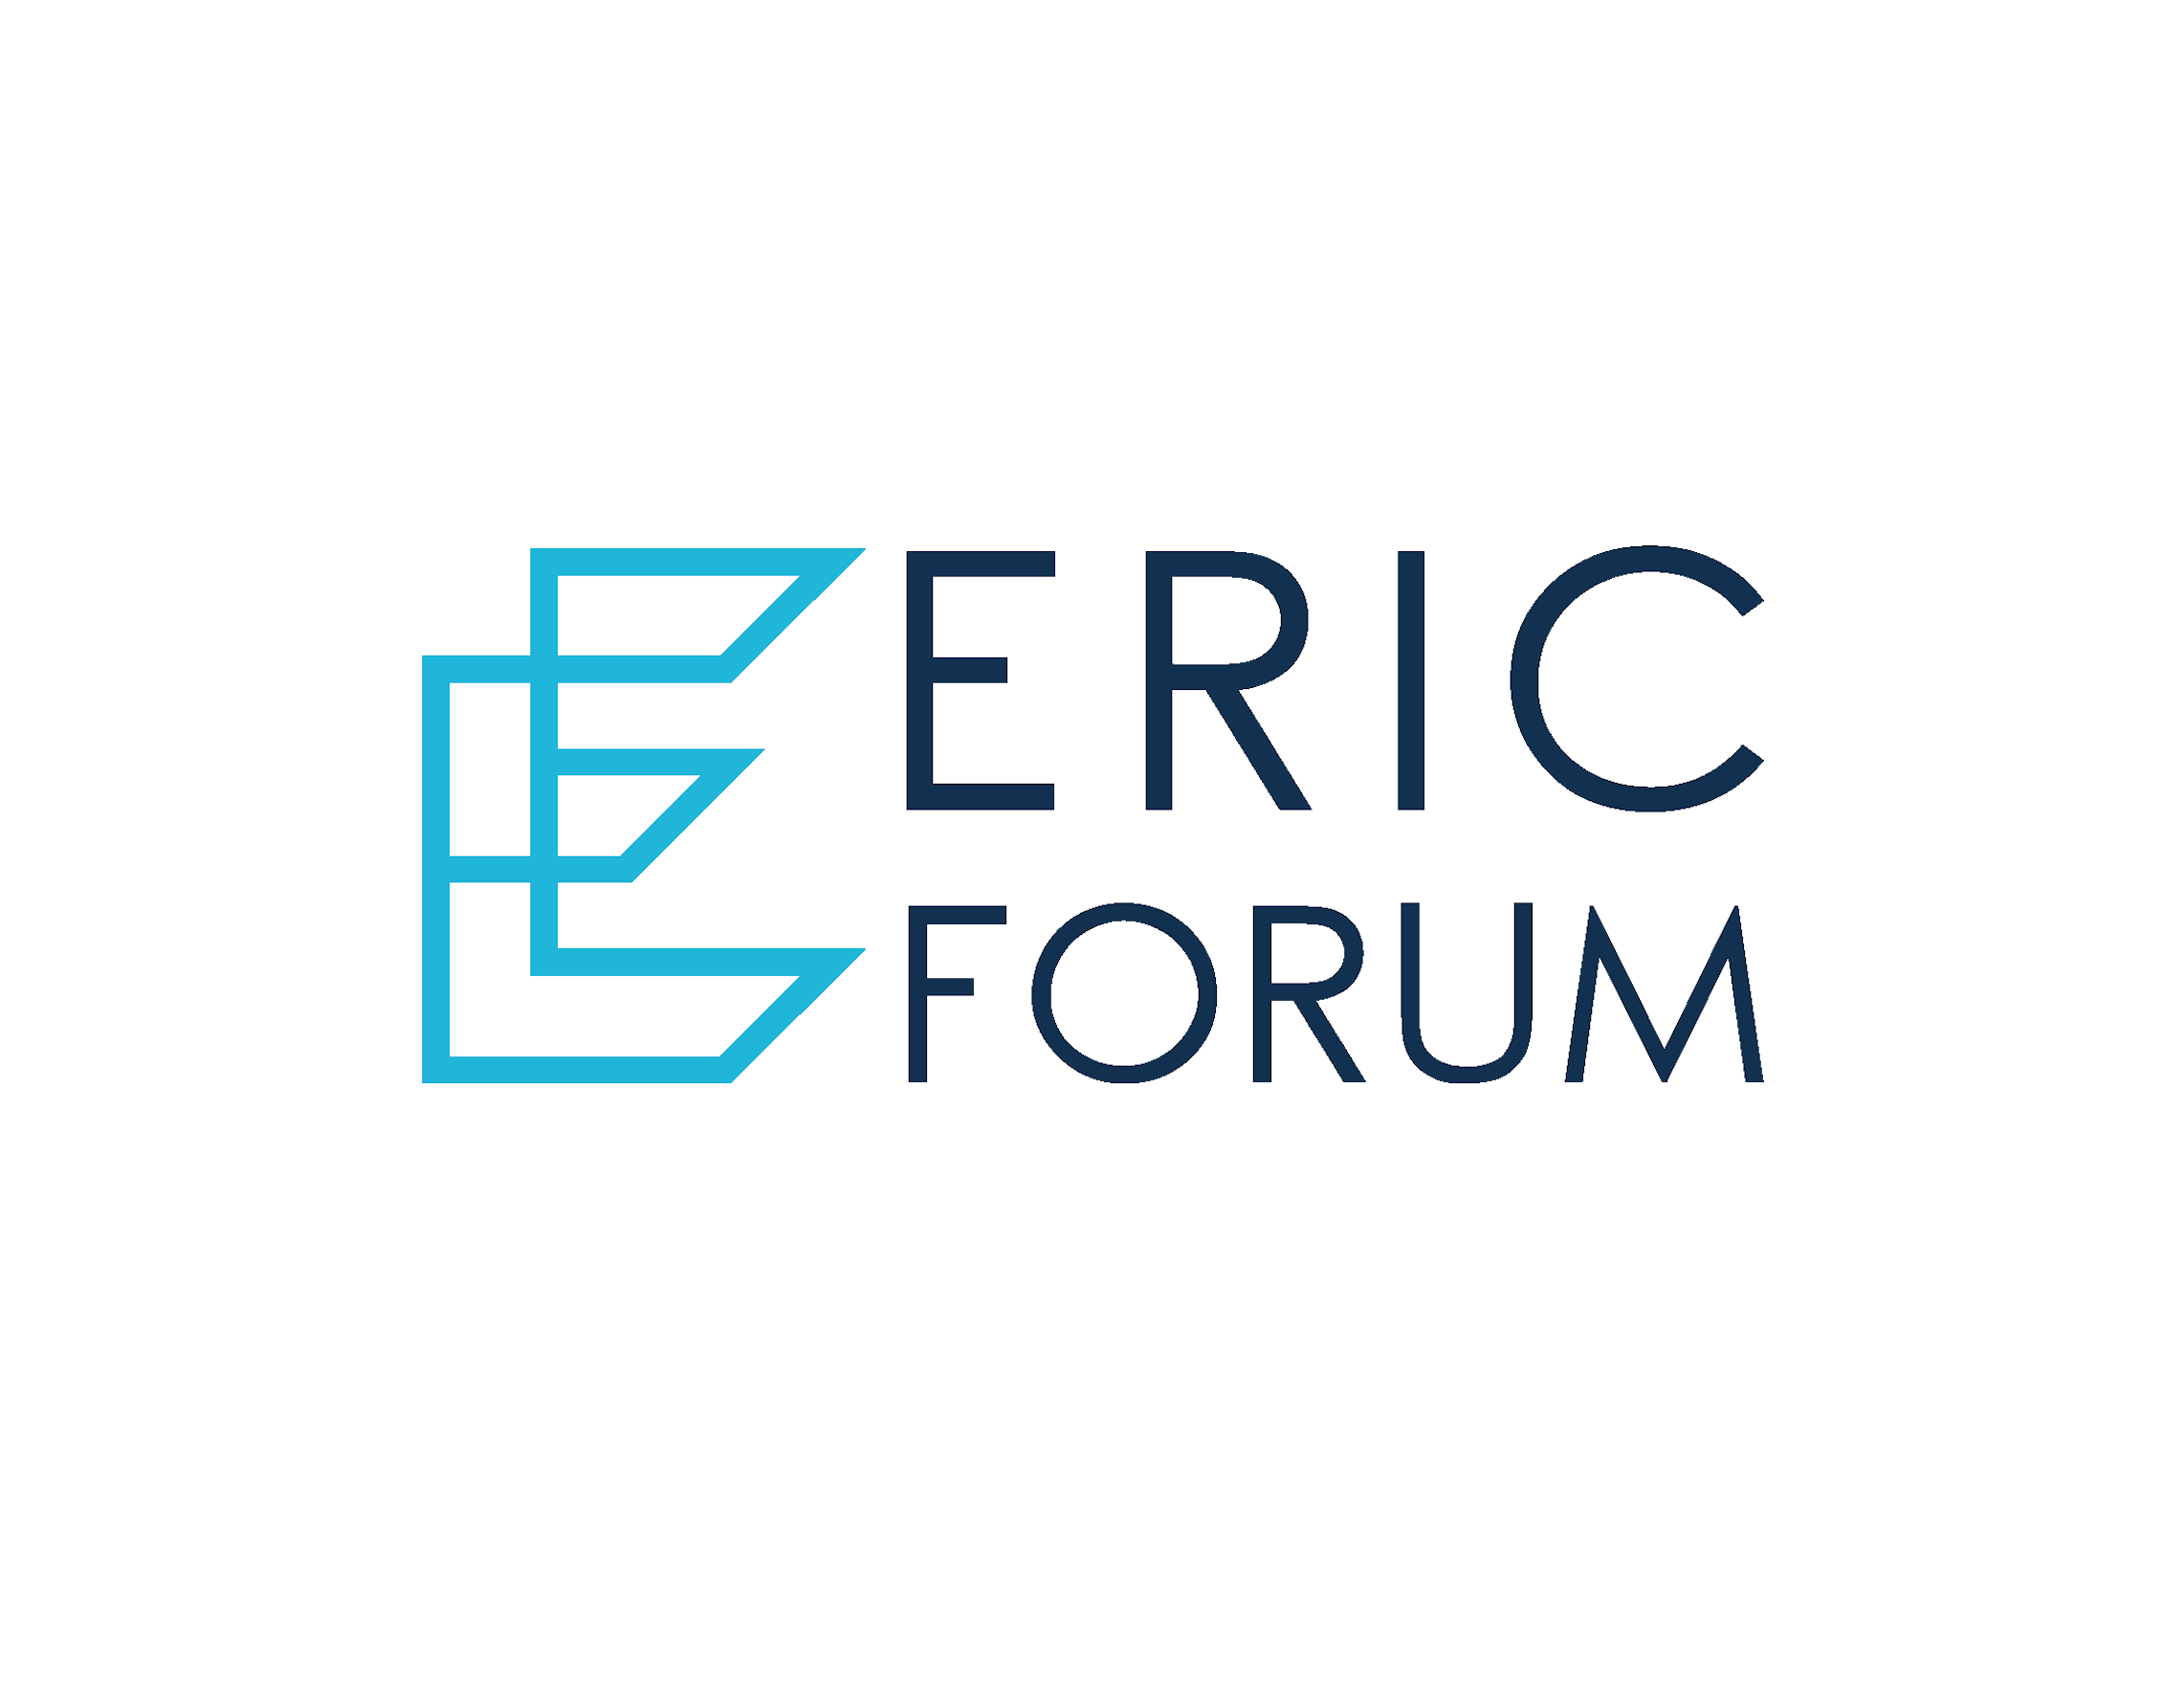 ERIC Forum logotype